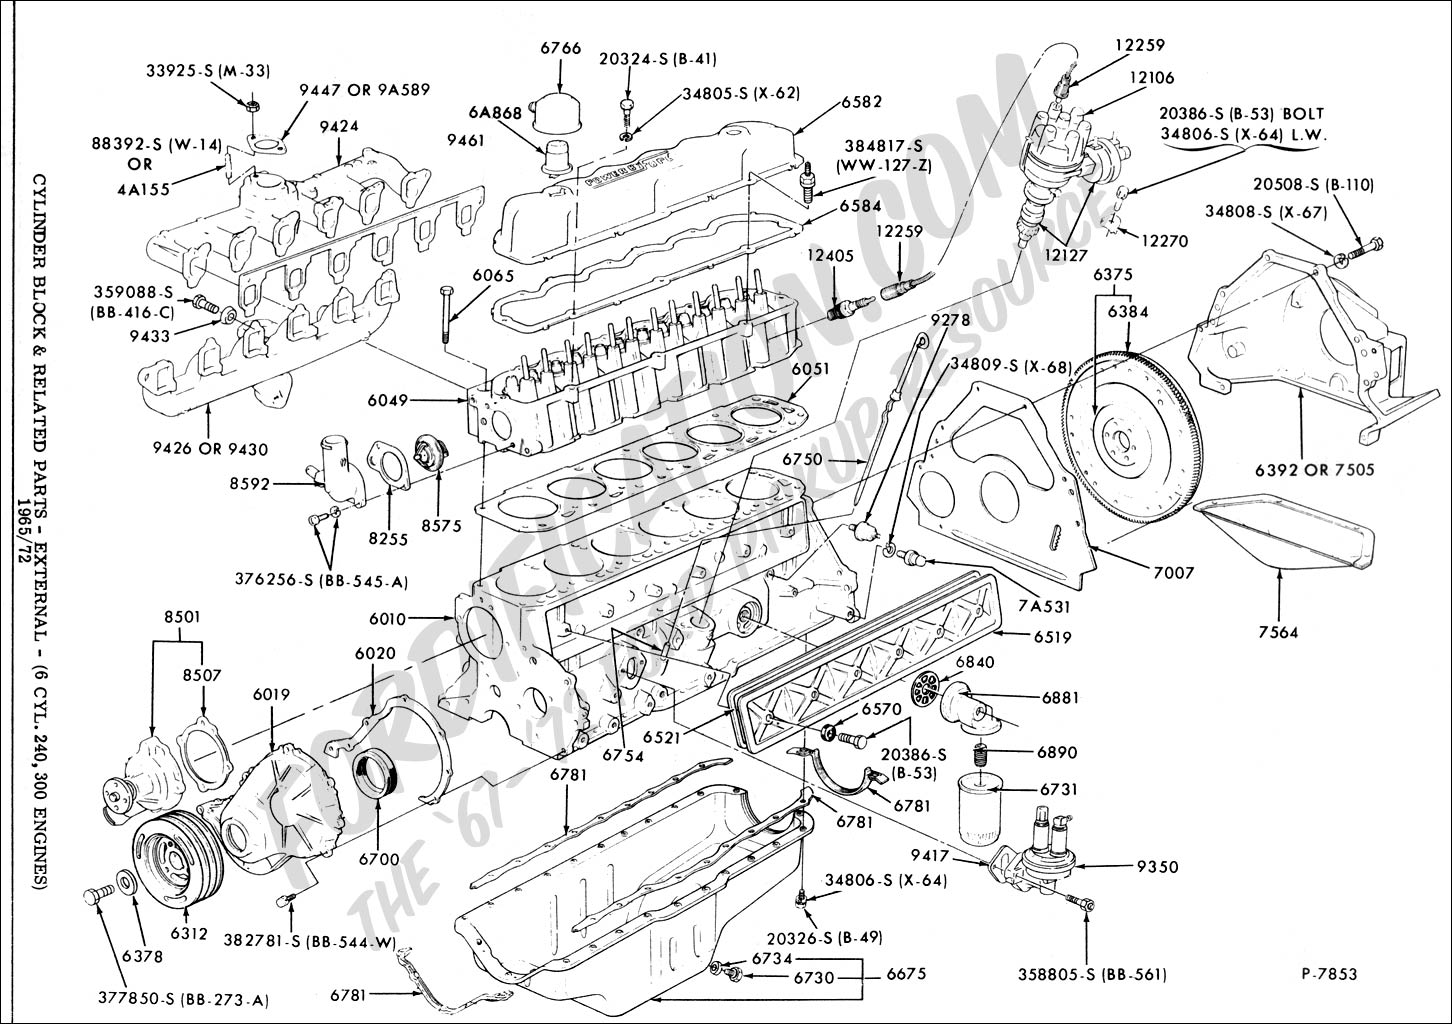 Ford 351 Windsor Engine Diagram Air Intake besides Fuse Box Diagram For 2007 Chrysler Sebring also M 12259 C460 besides Single Point Distributor Wiring Diagram together with Chevy 454 Or Ford 460 Motorhome Engine. on ford 460 crate engine